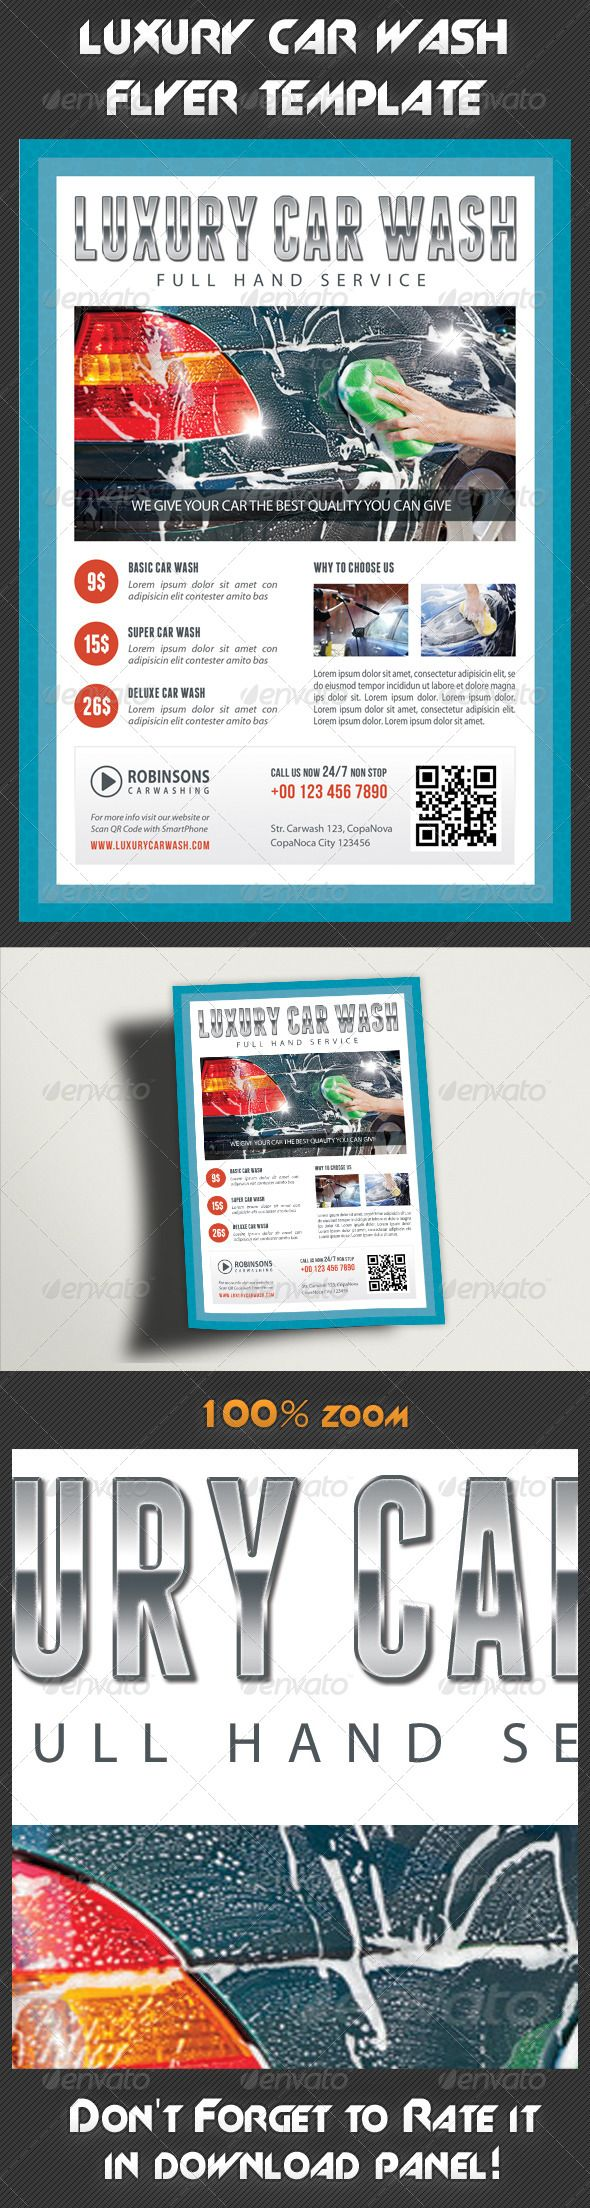 Perfect for a wide range of car wash related businesses like: Car Wash & Auto Detailing Services or Car Wash Equipment. Pack Included:   Flyer Template  PSD file  Print size: 216x154 mm ¨C 6x8.5 inches  Trim size: 210x148 mm ¨C 5.8x8.3 inches  Print Ready